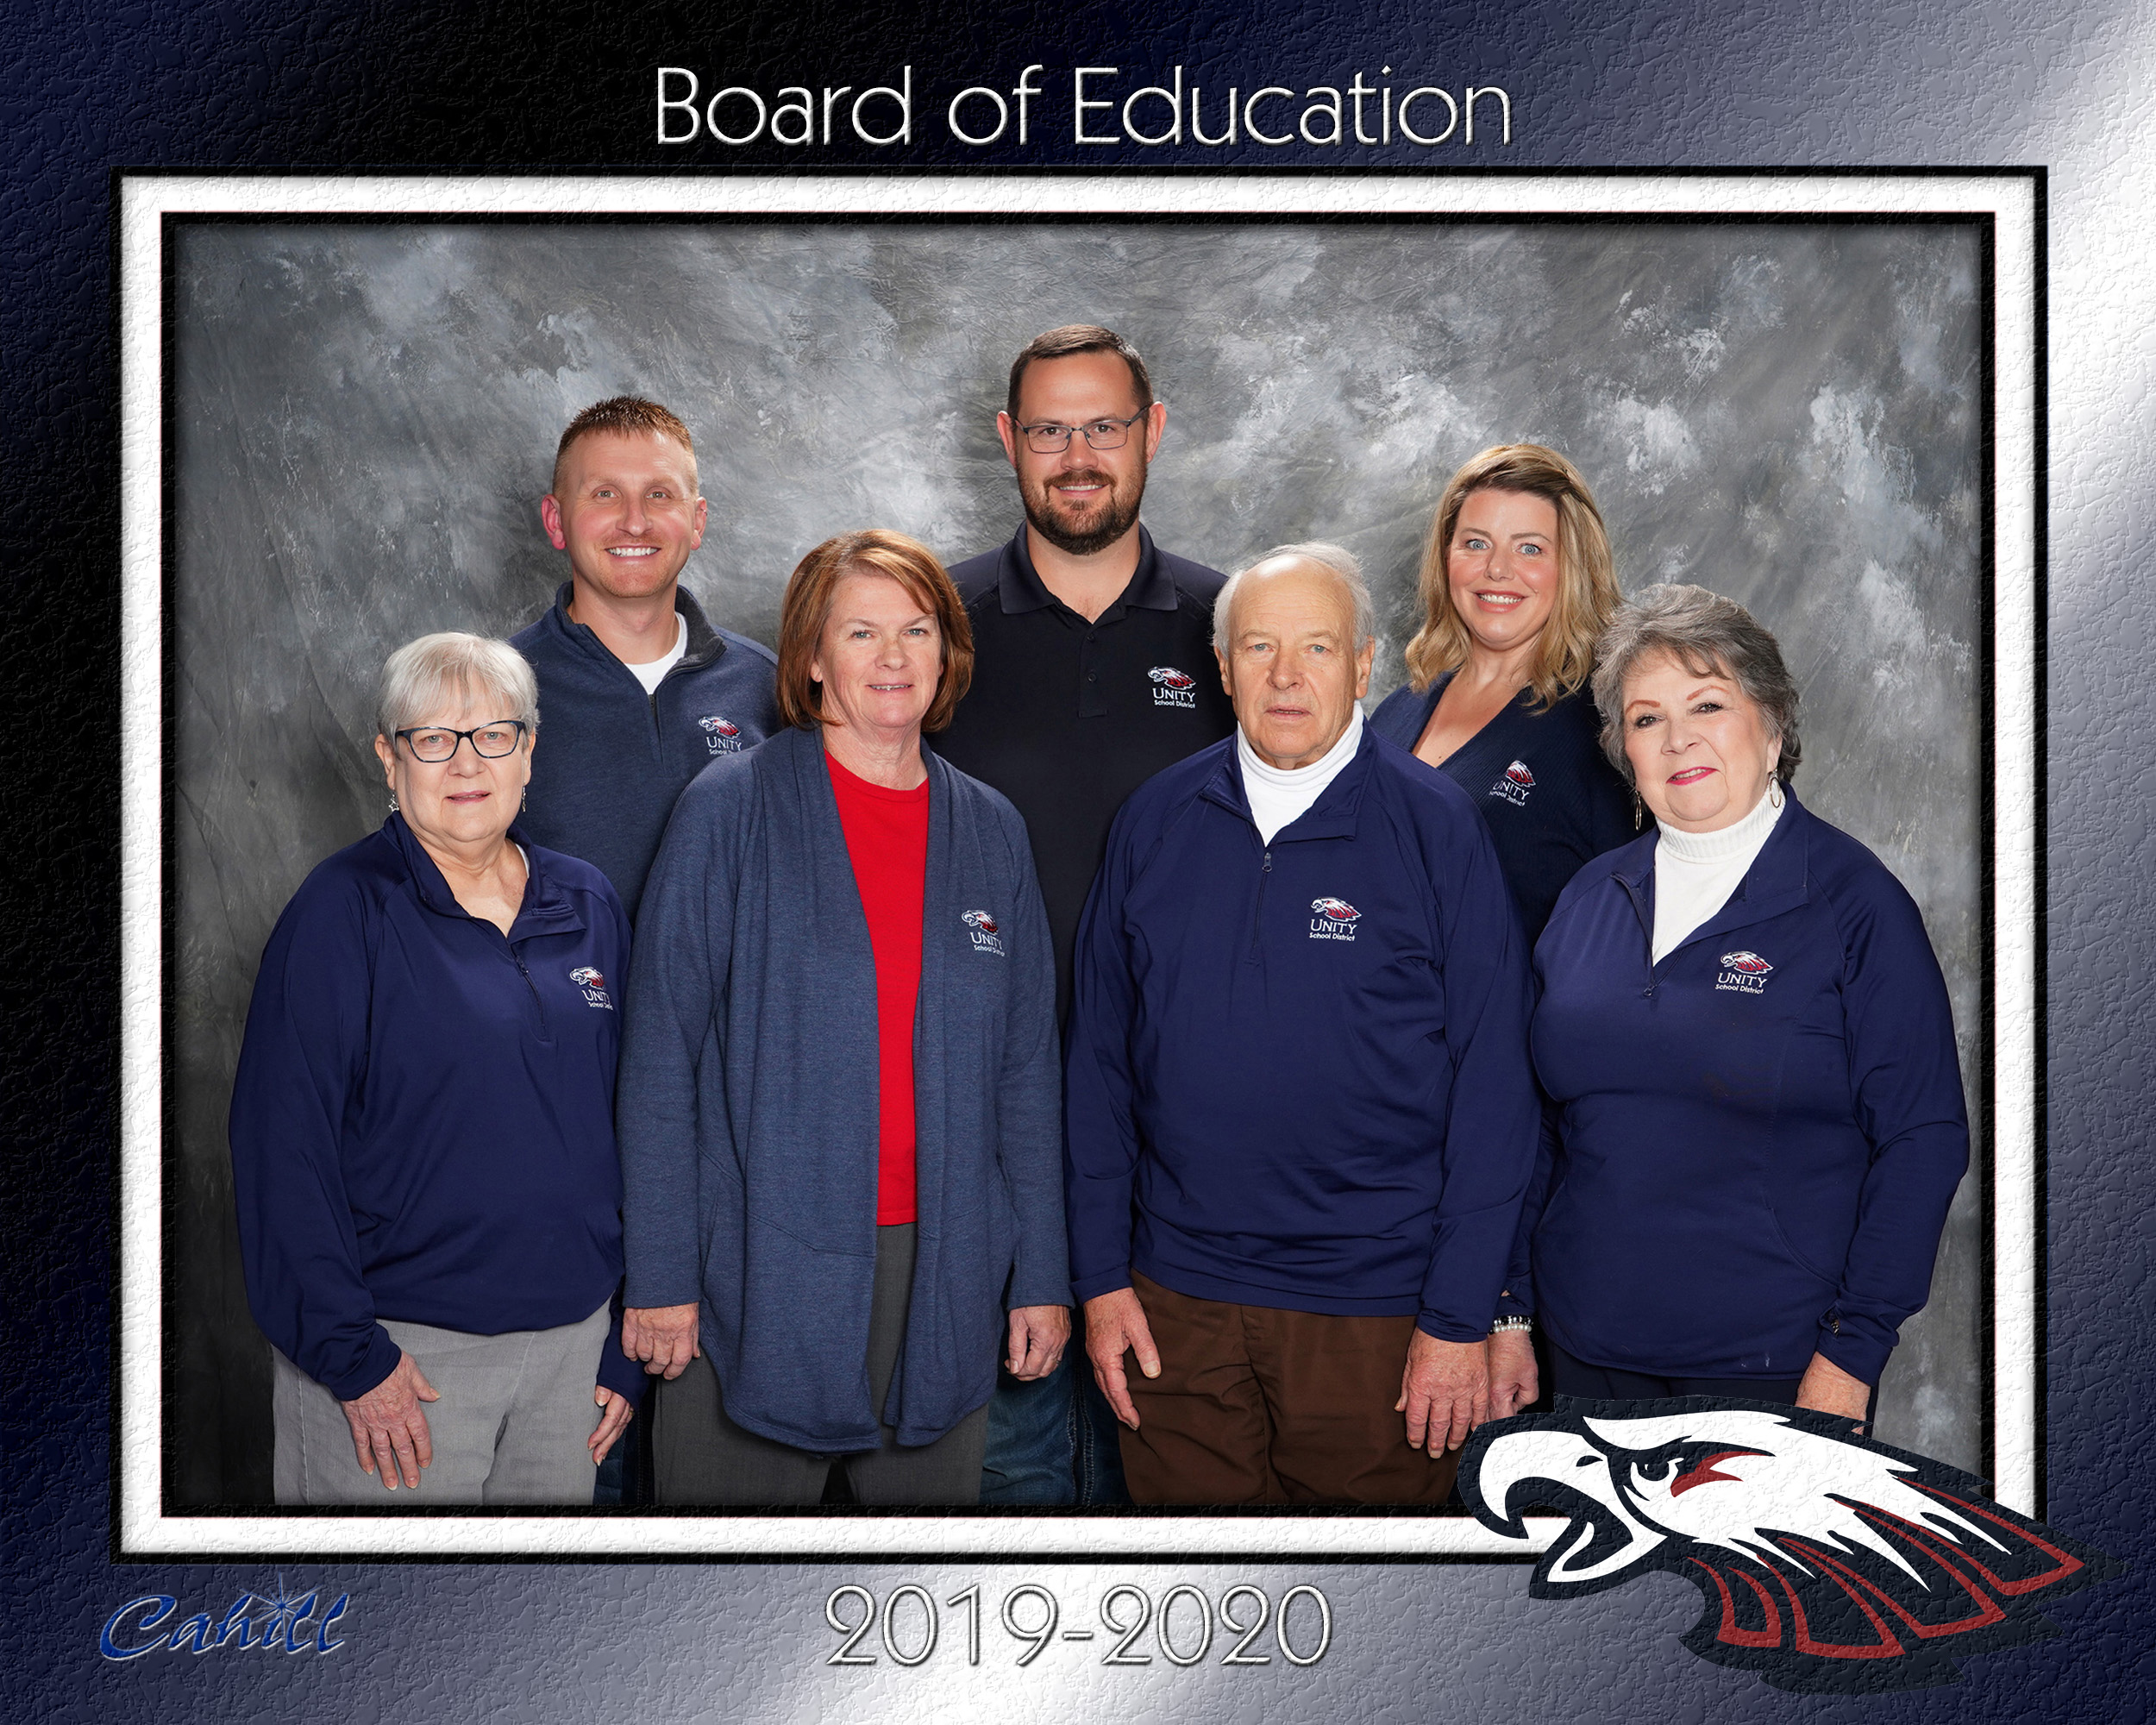 photo of the members of the board of education